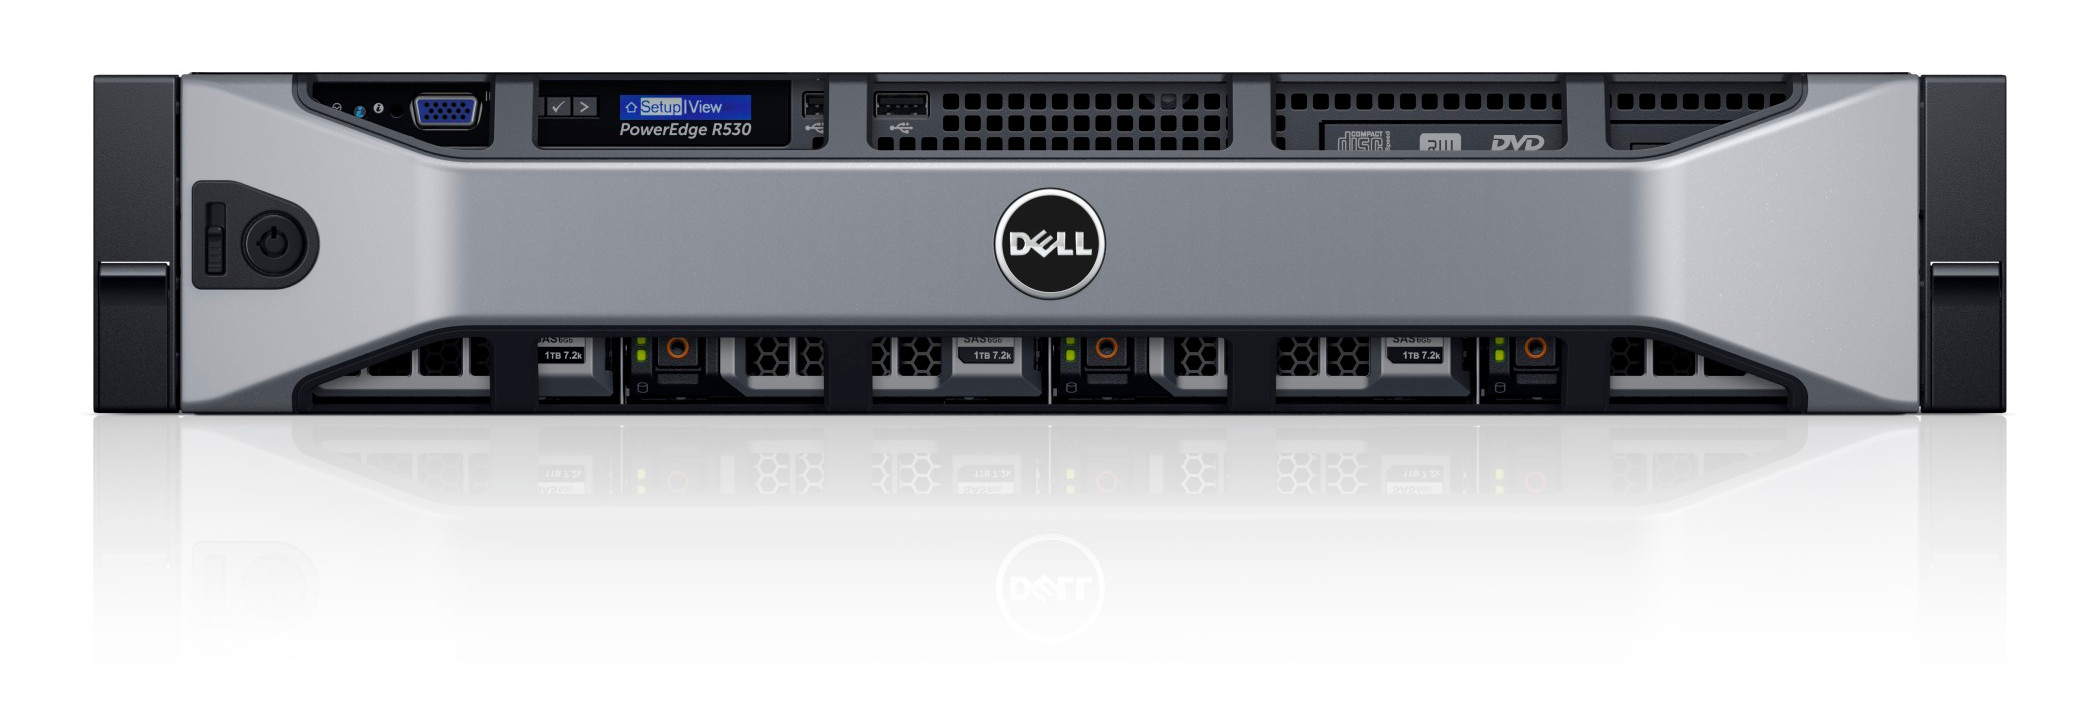 Dell PowerEdge R530 E5-2609v4